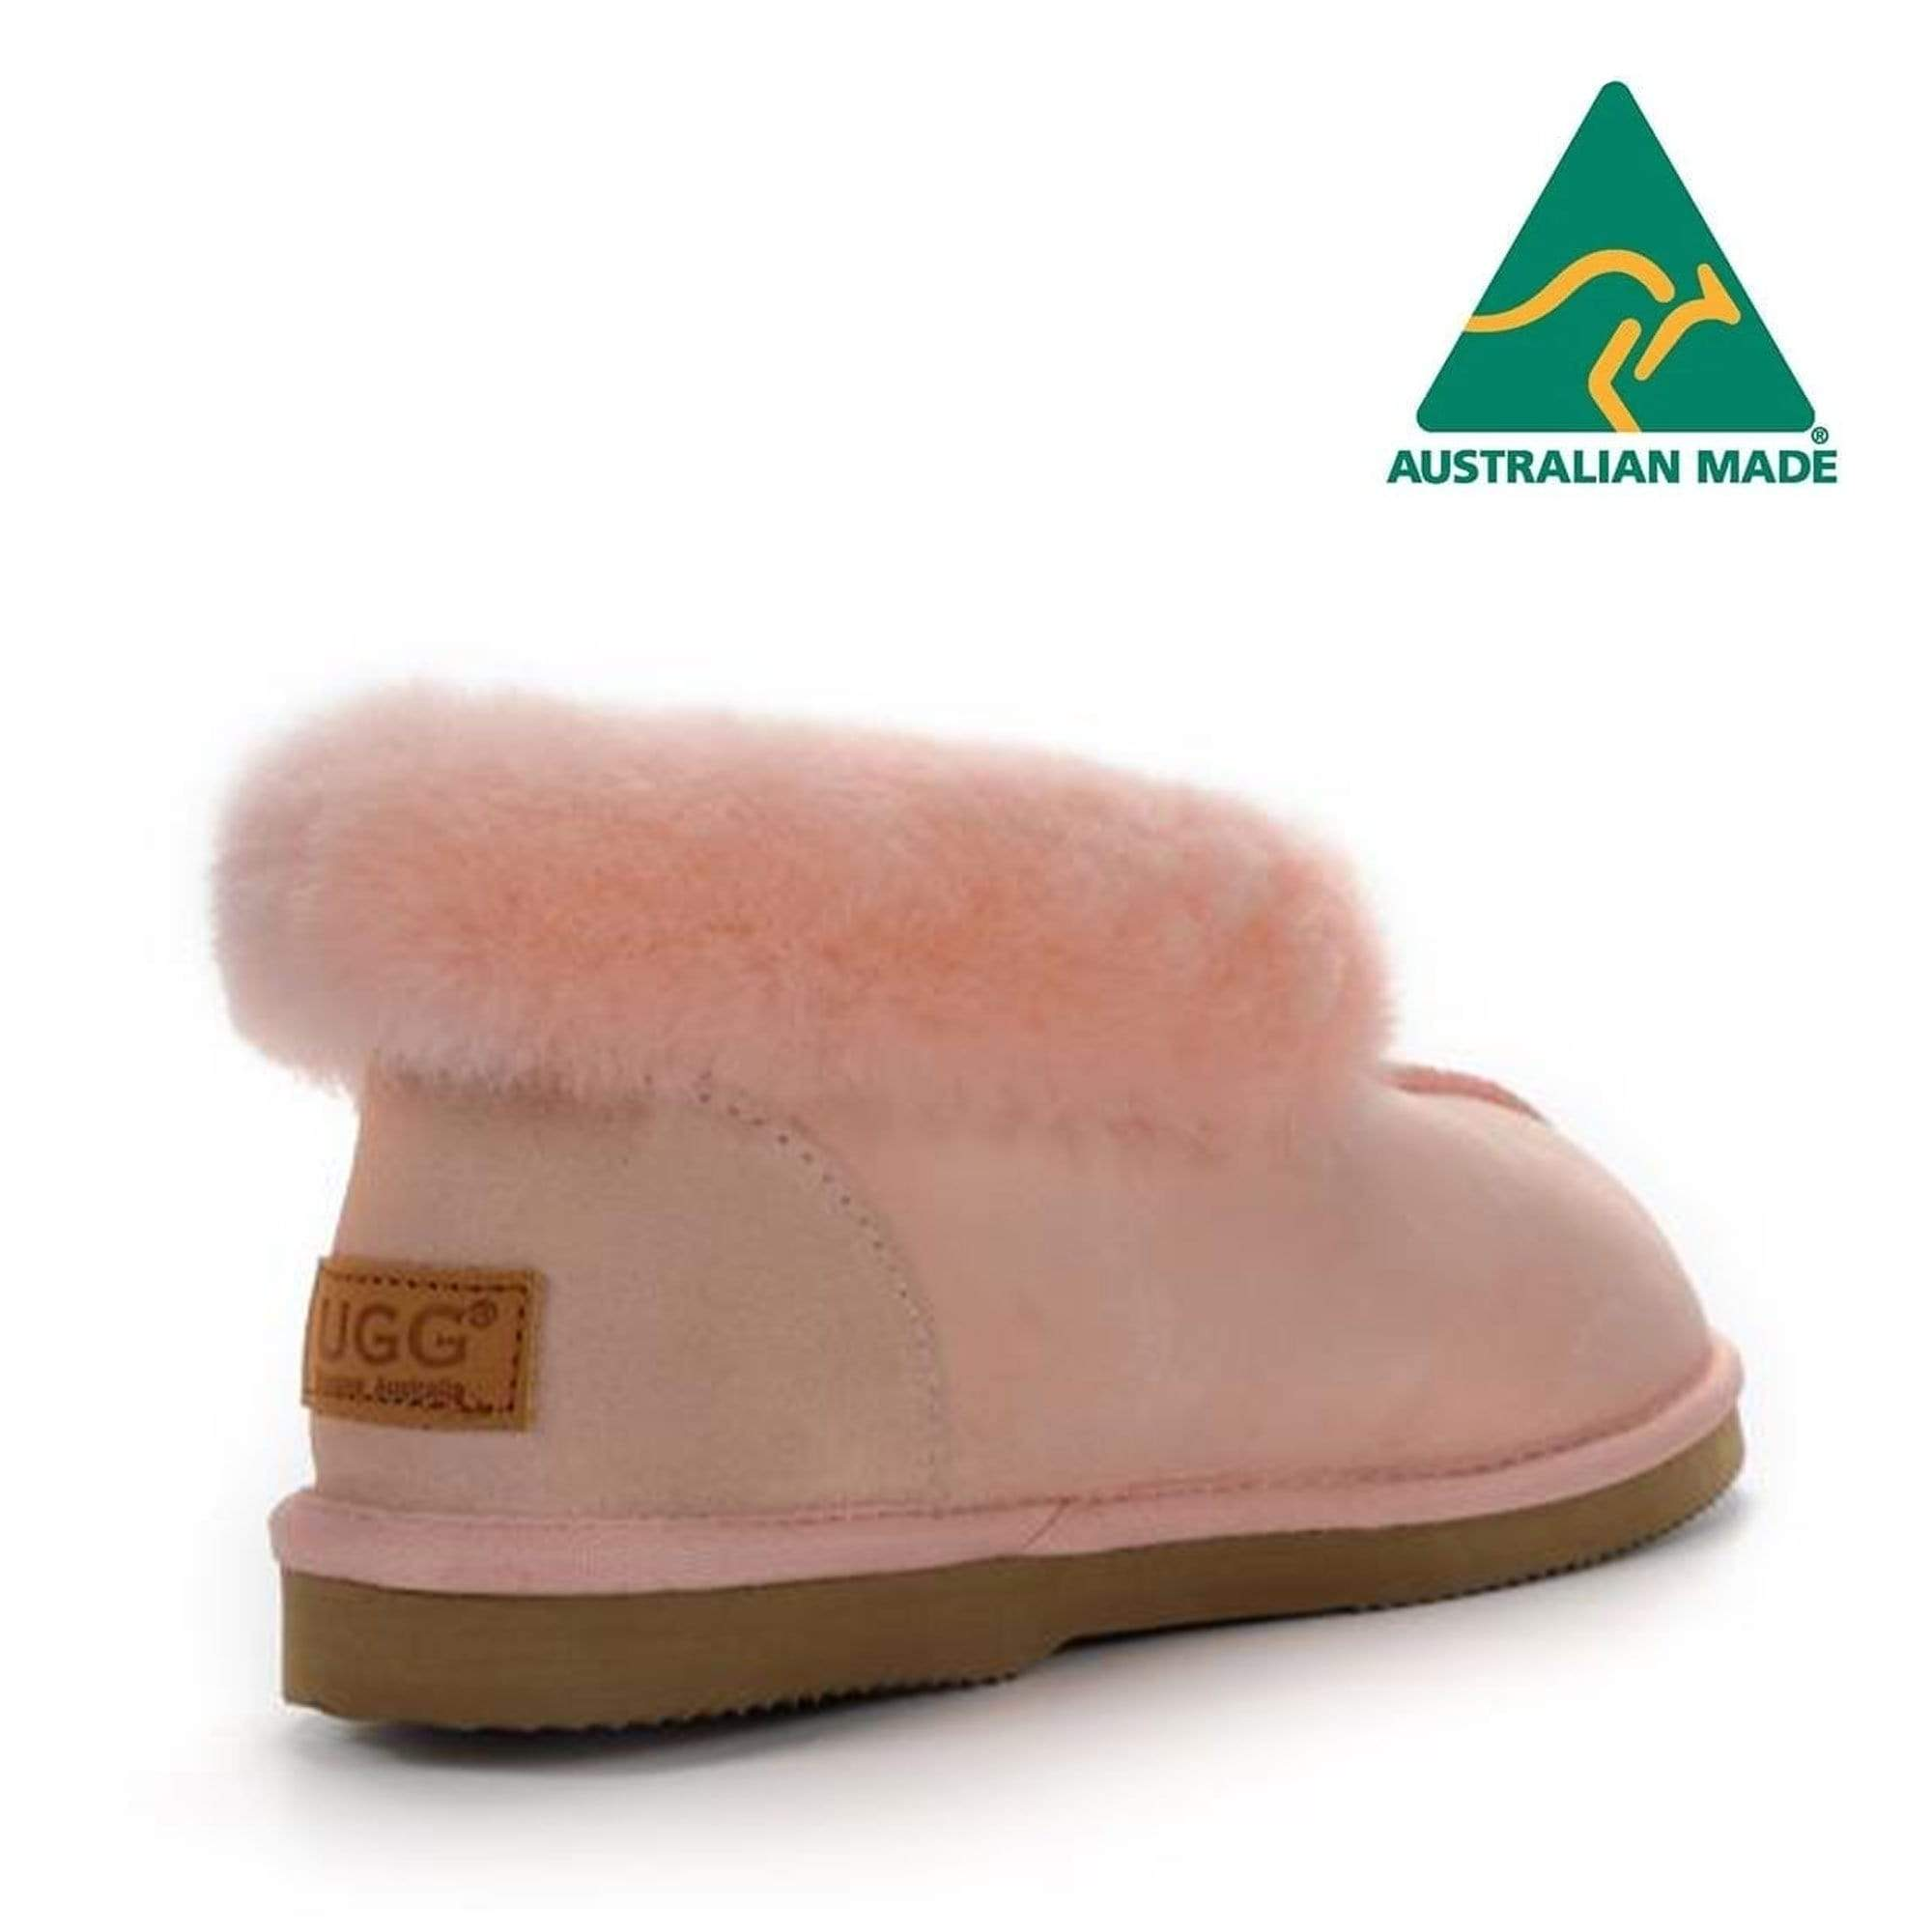 UGG Roozee Unisex Slippers - Made in Australia